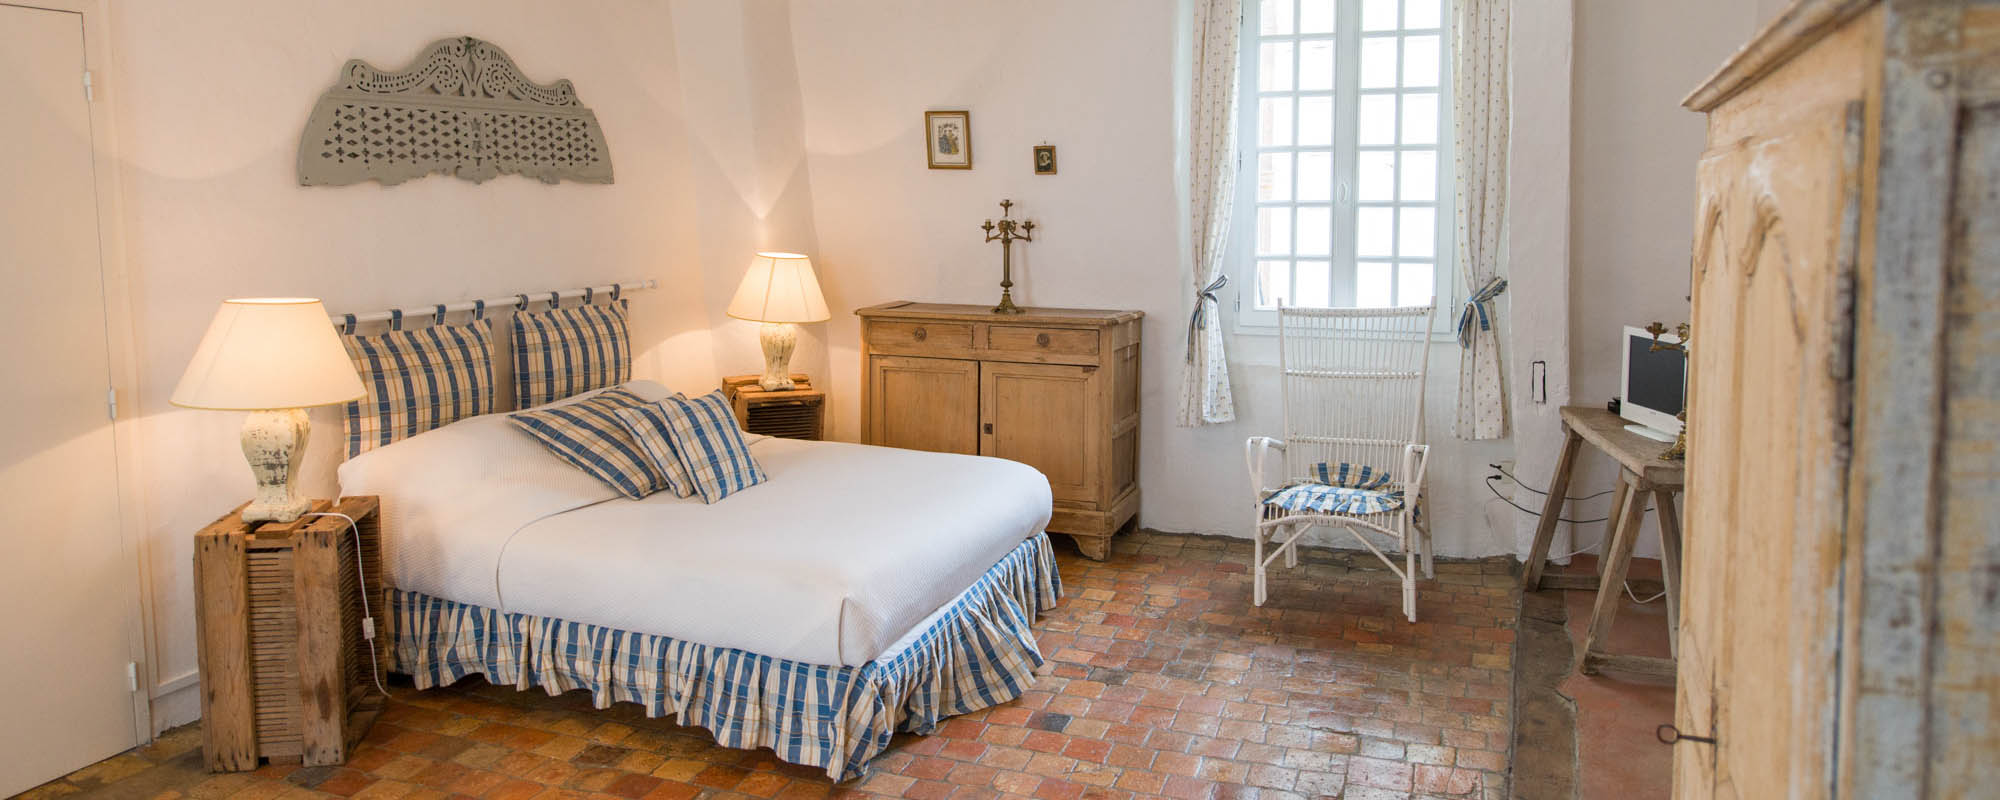 Chambre blanche - Les chambres blanches ...